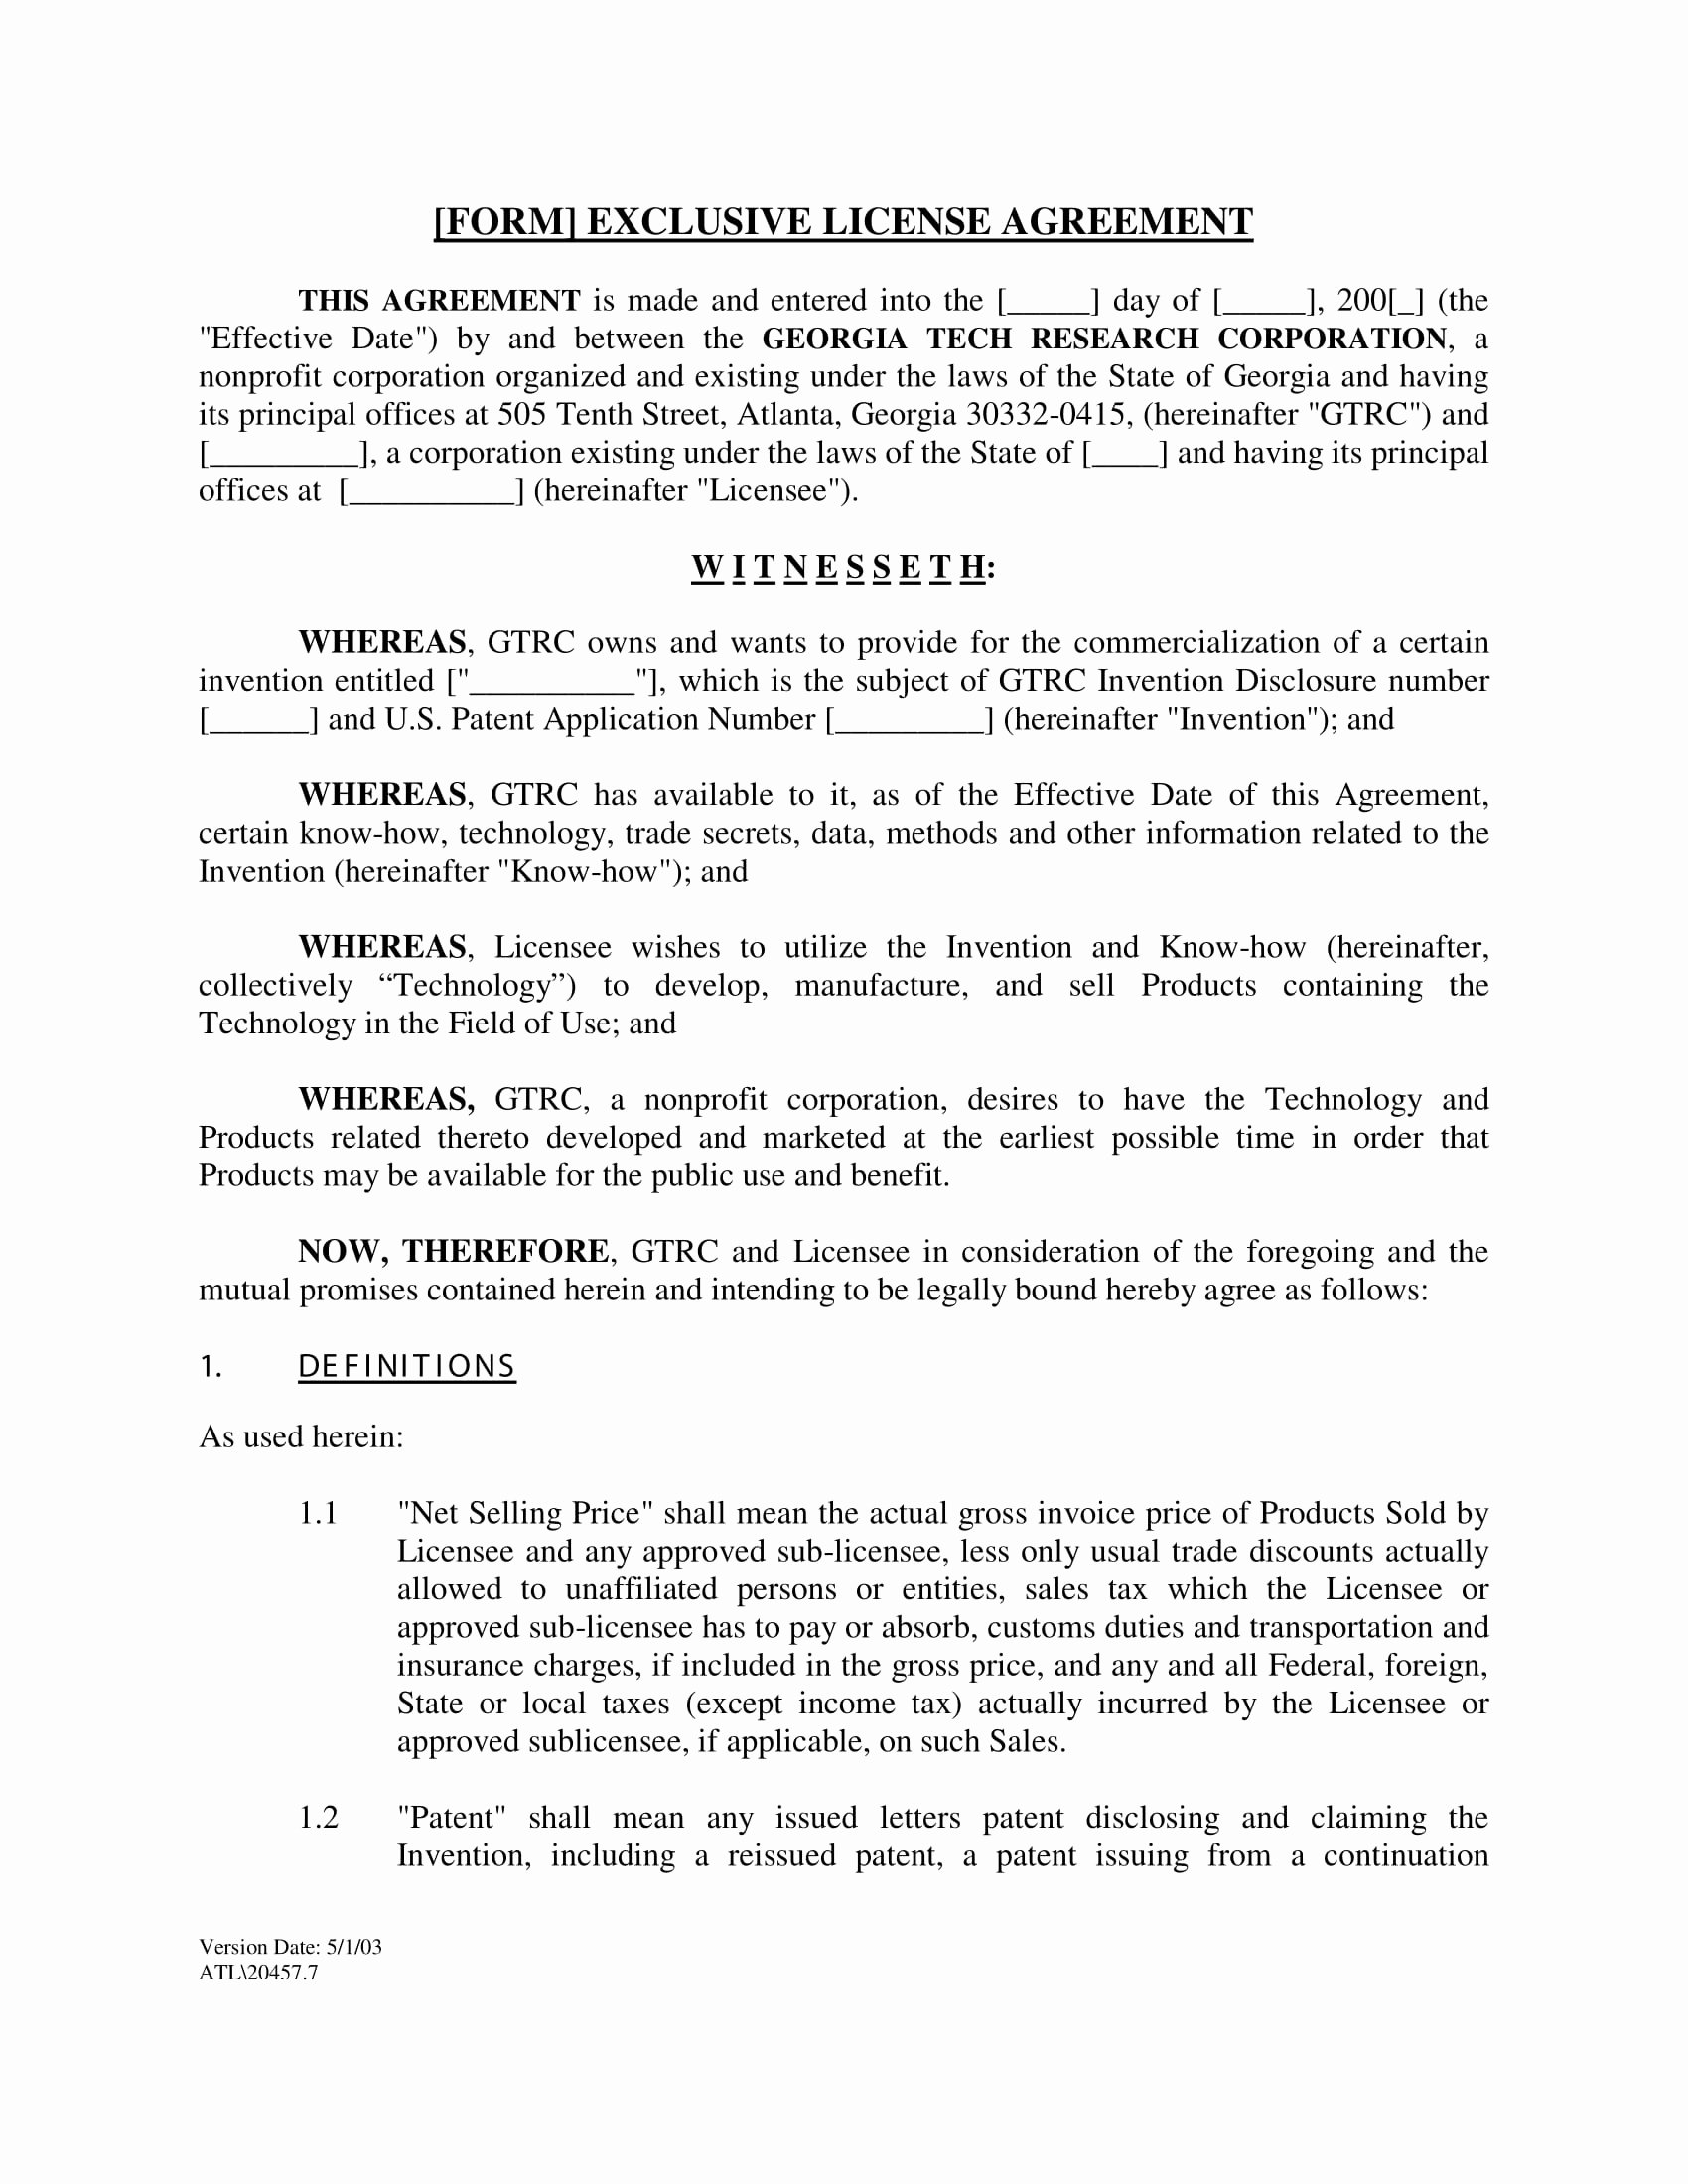 Exclusive License Agreement Template New 4 License Agreement Long forms Pdf